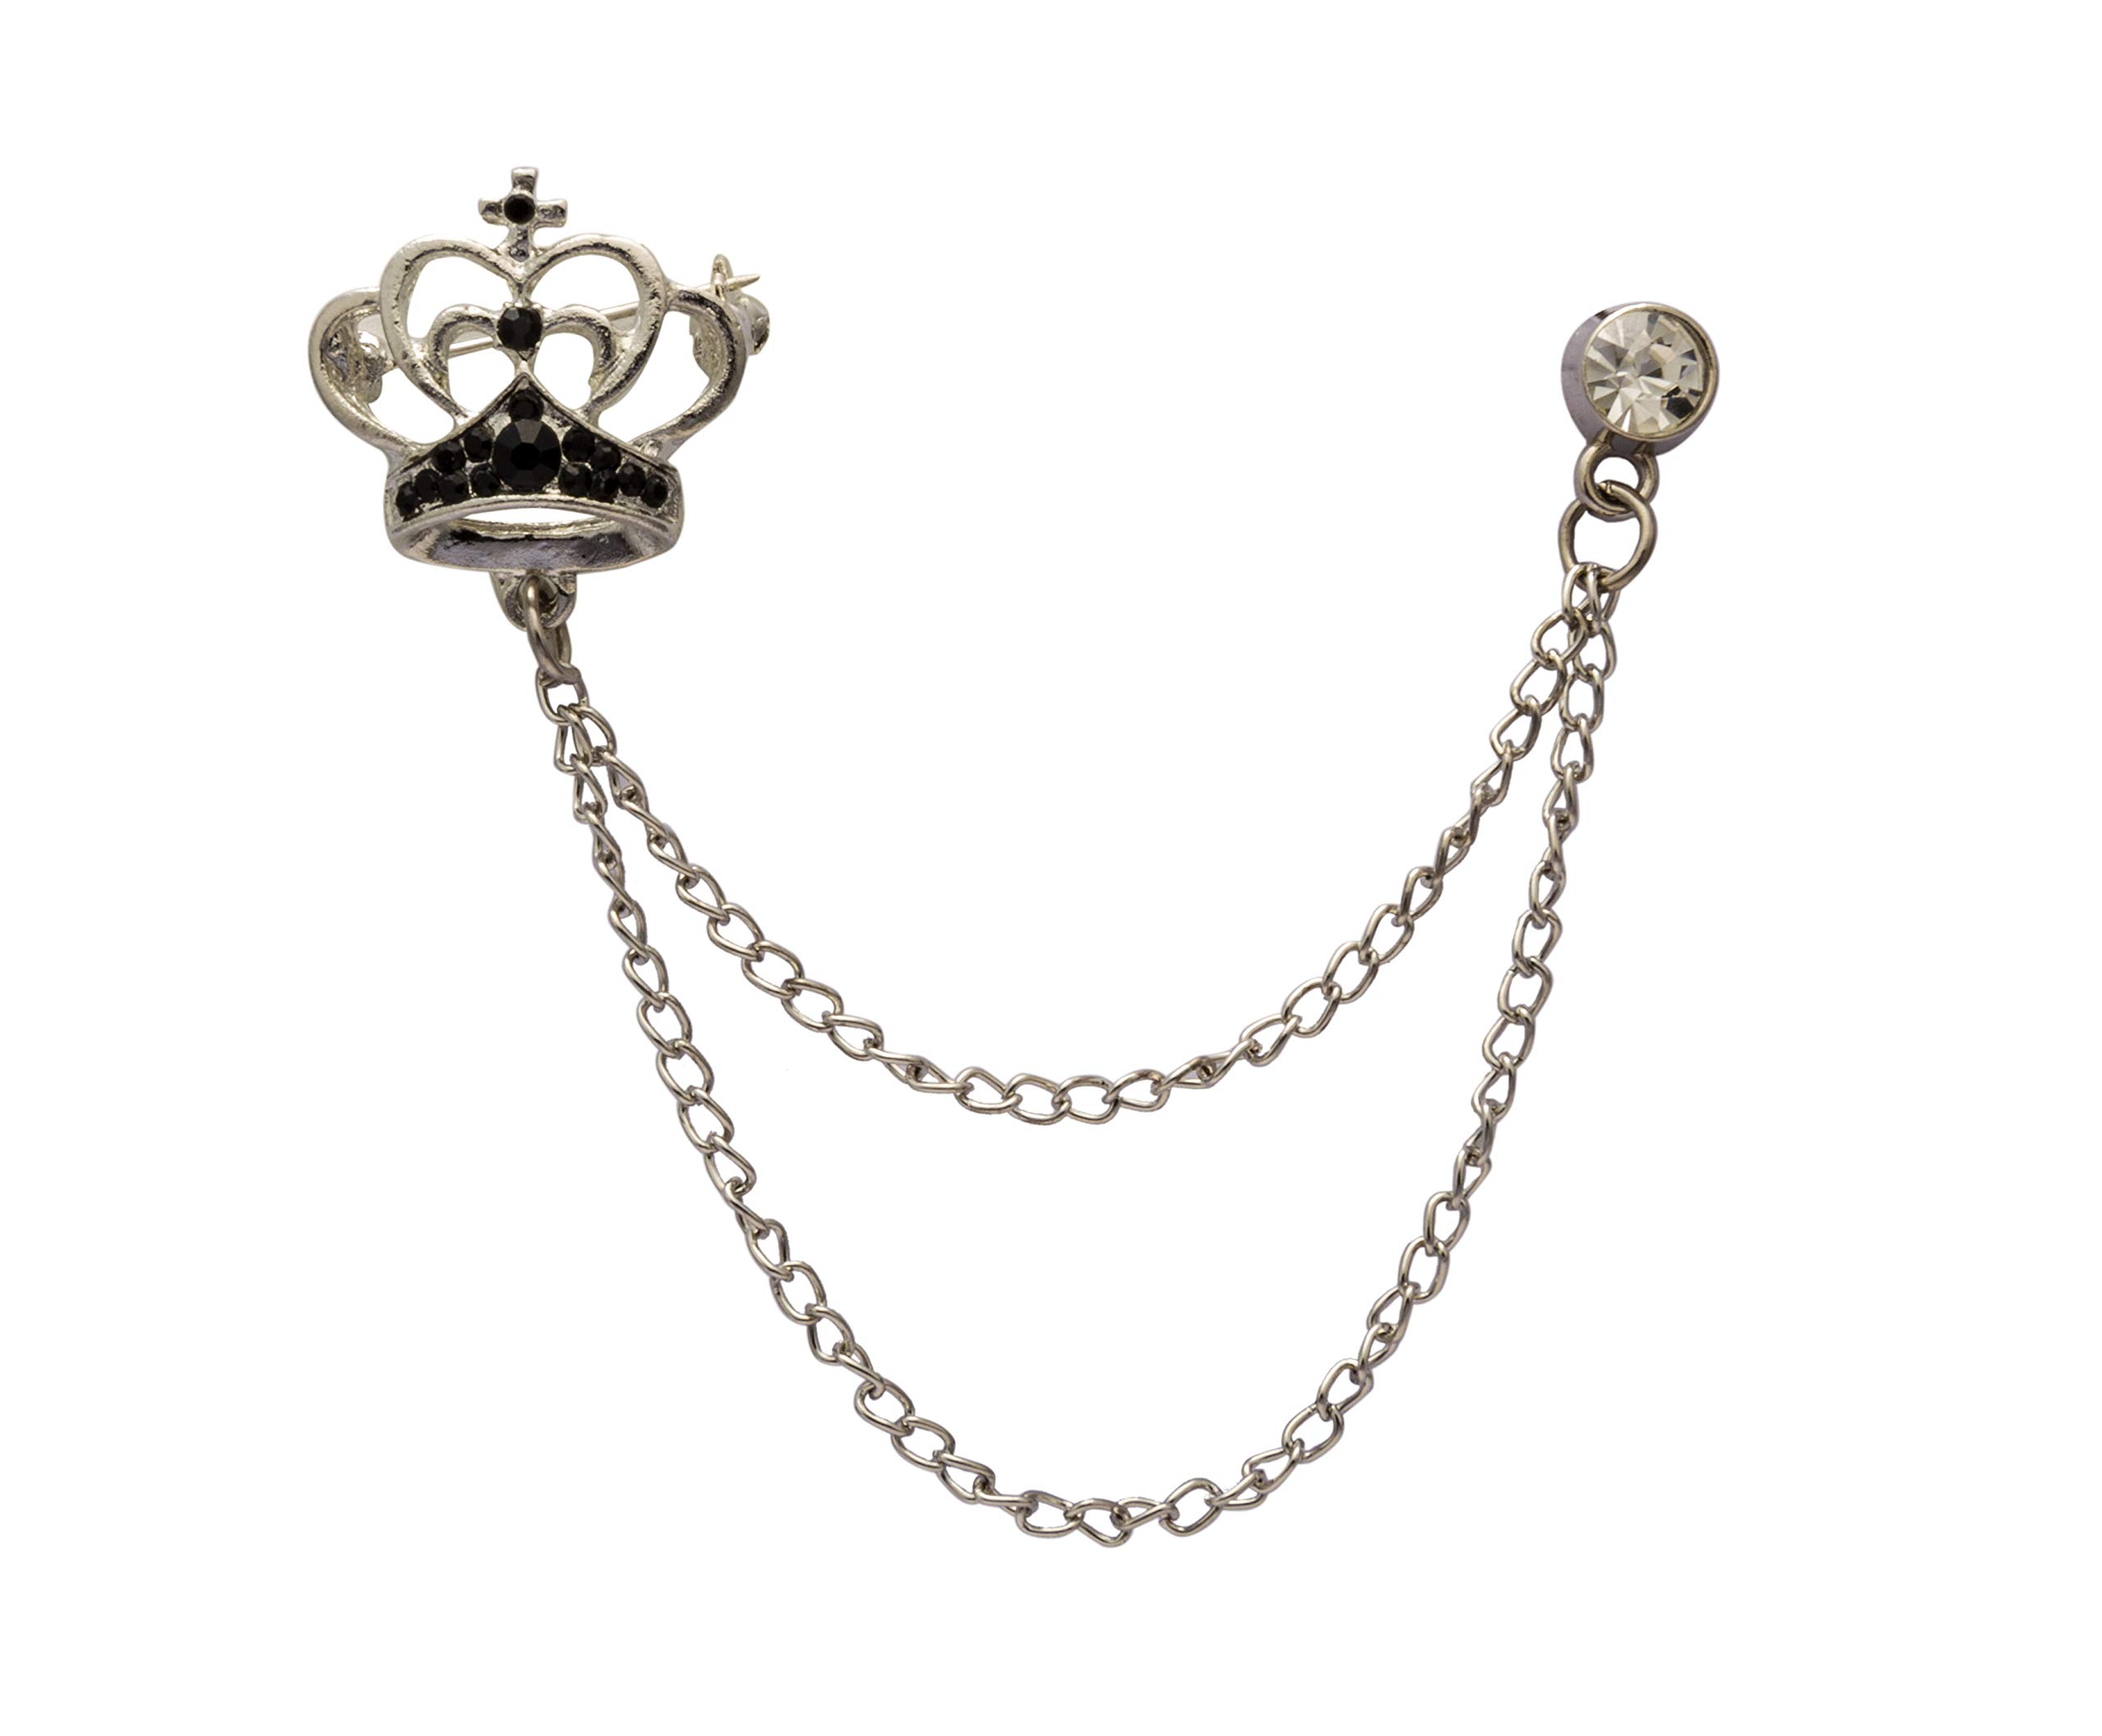 Knighthood Elegant Silver Crown With Black Crystal and Hanging Chain Lapel Pin Brooch for Men by Knighthood